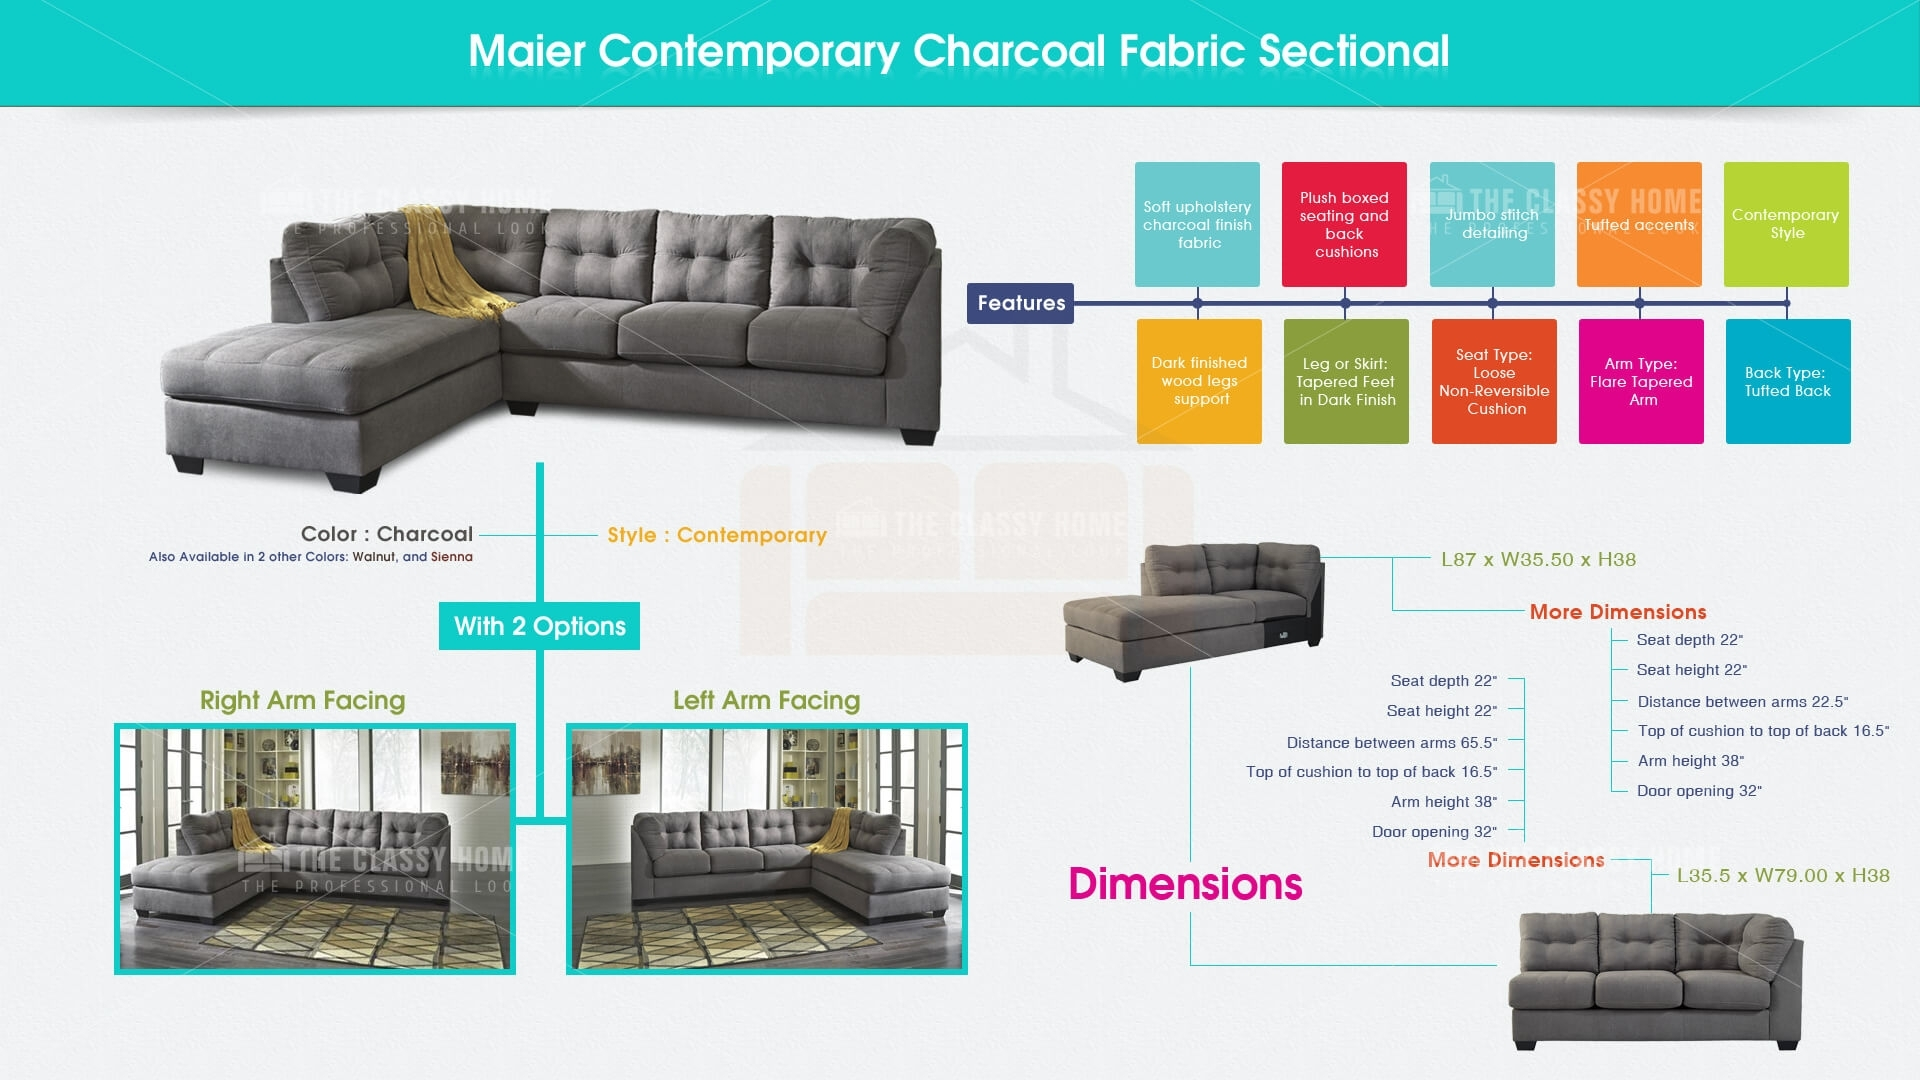 Ashley Furniture Maier Charcoal Raf Chaise Sectional | The Classy Home with Lucy Dark Grey 2 Piece Sectionals With Laf Chaise (Image 6 of 30)